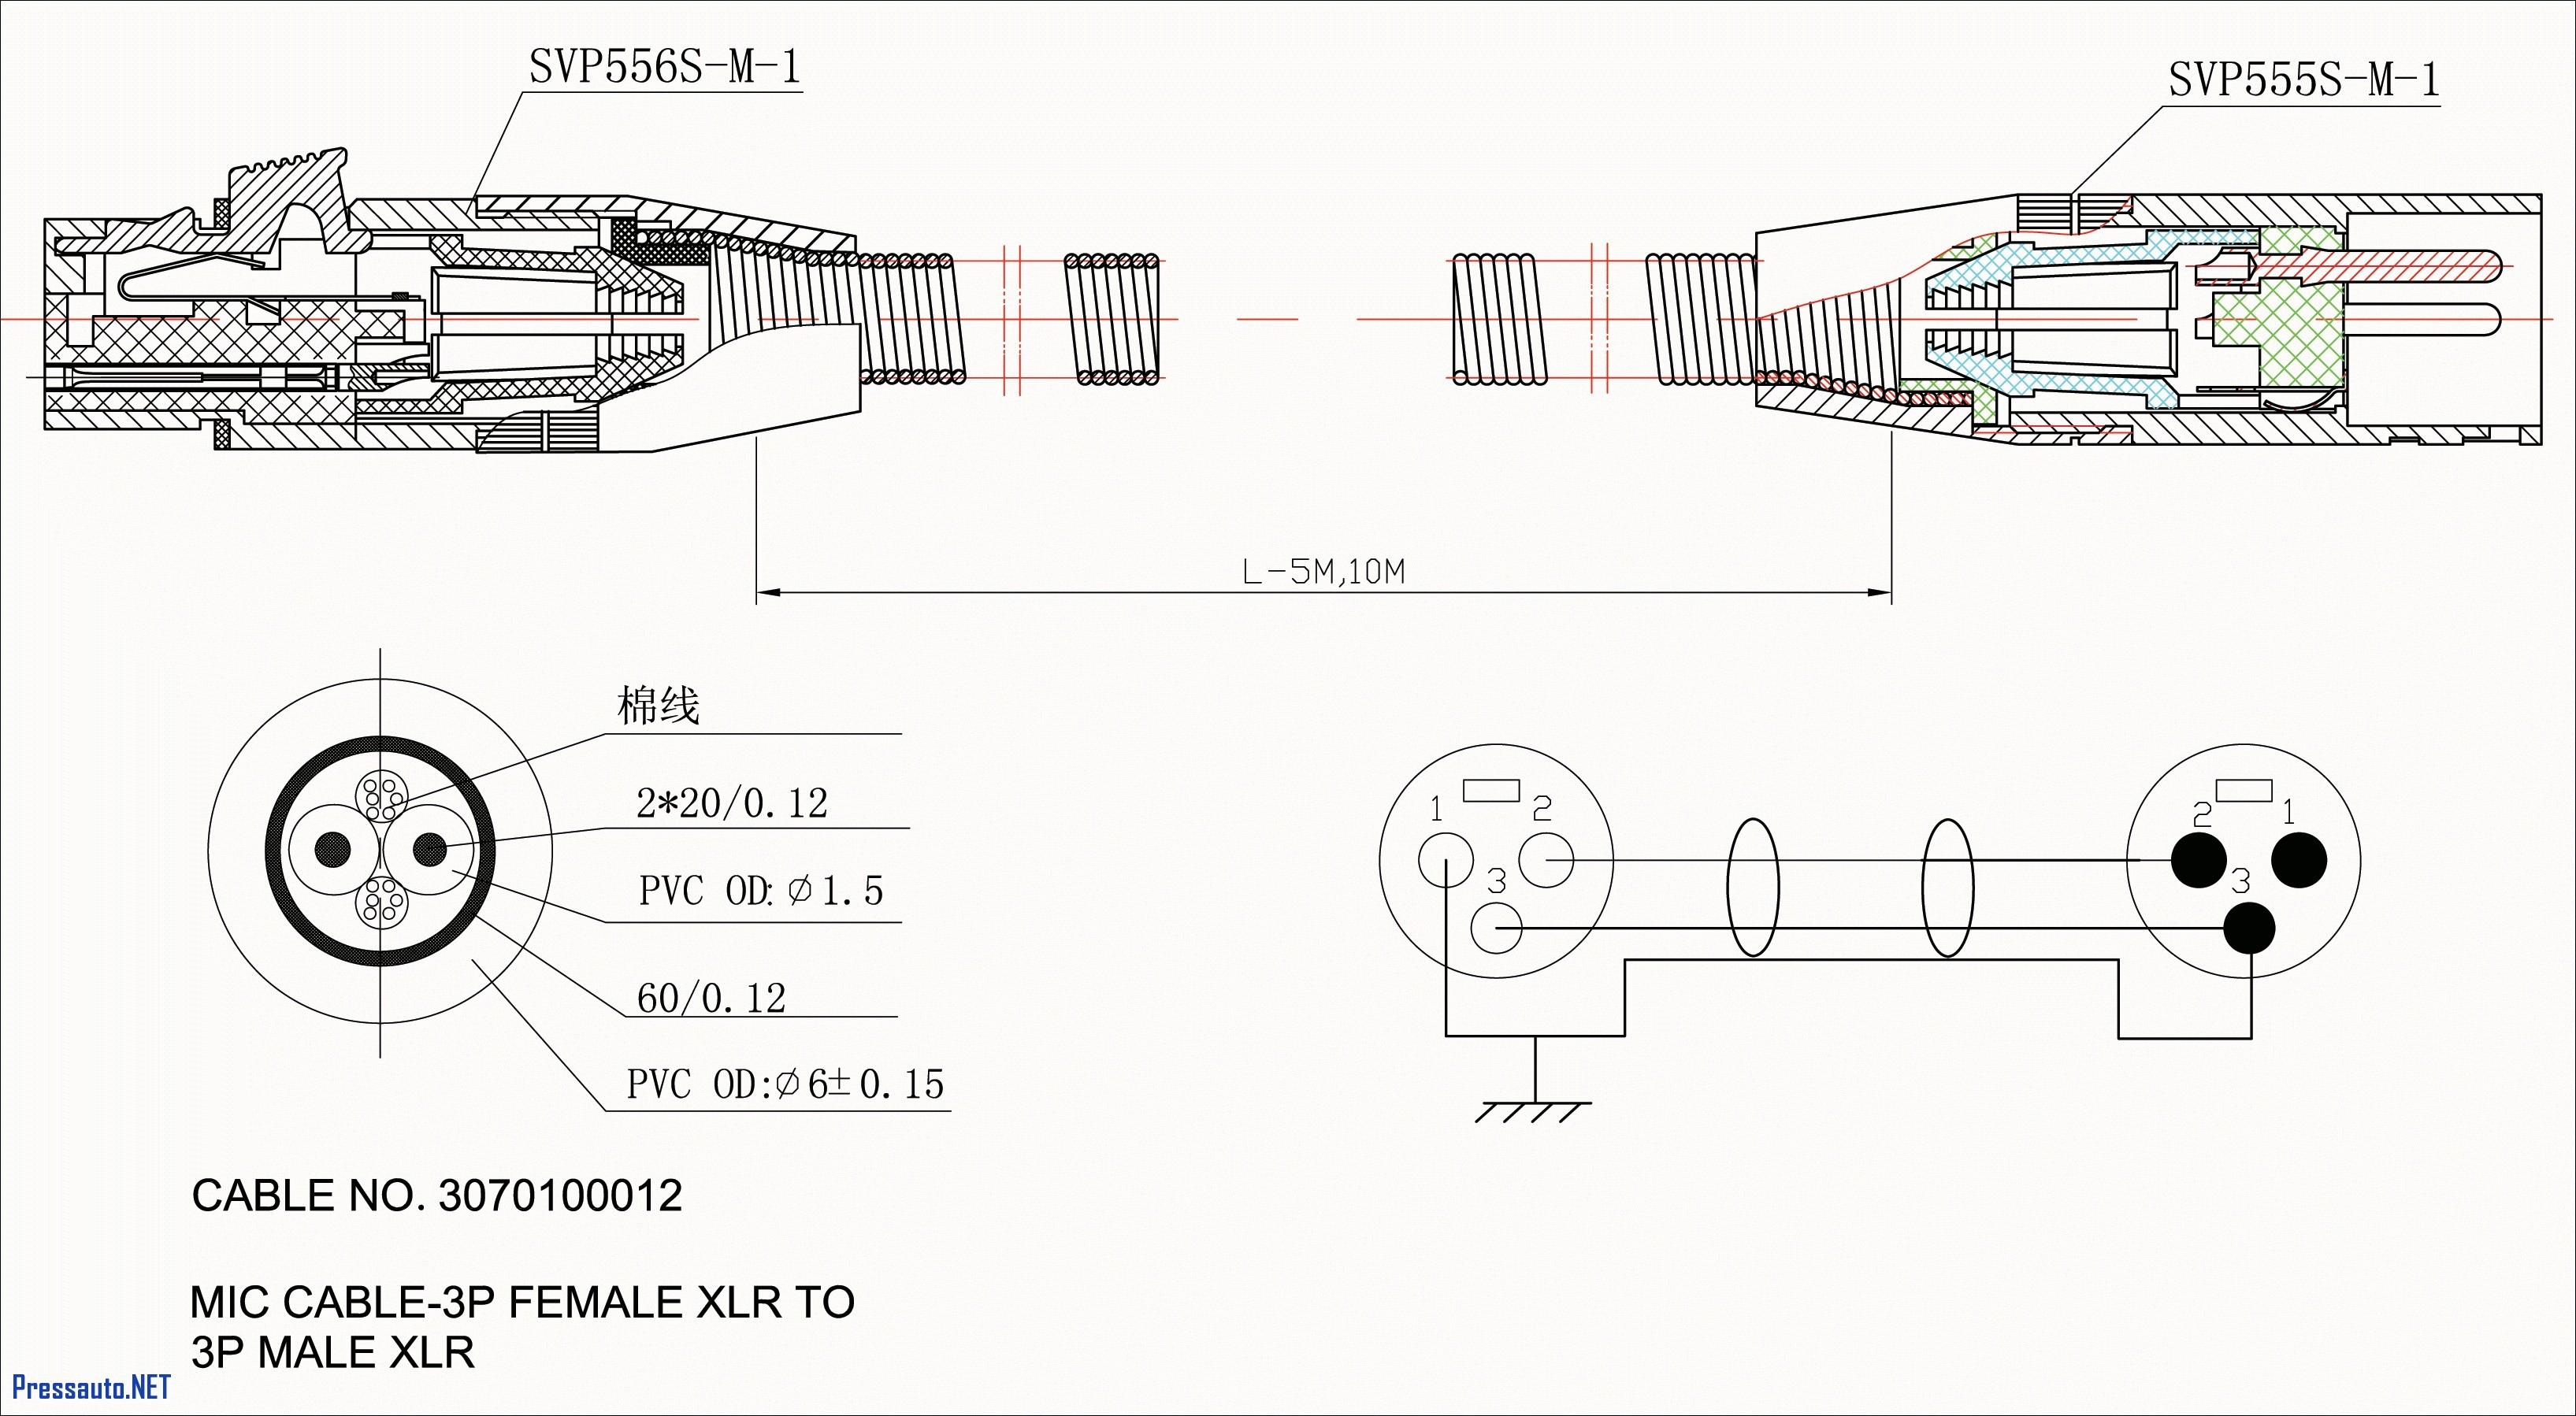 1993 ford Explorer Wiring Diagram 2005 ford Explorer Electrical Wiring Diagrams Detailed Schematic Of 1993 ford Explorer Wiring Diagram